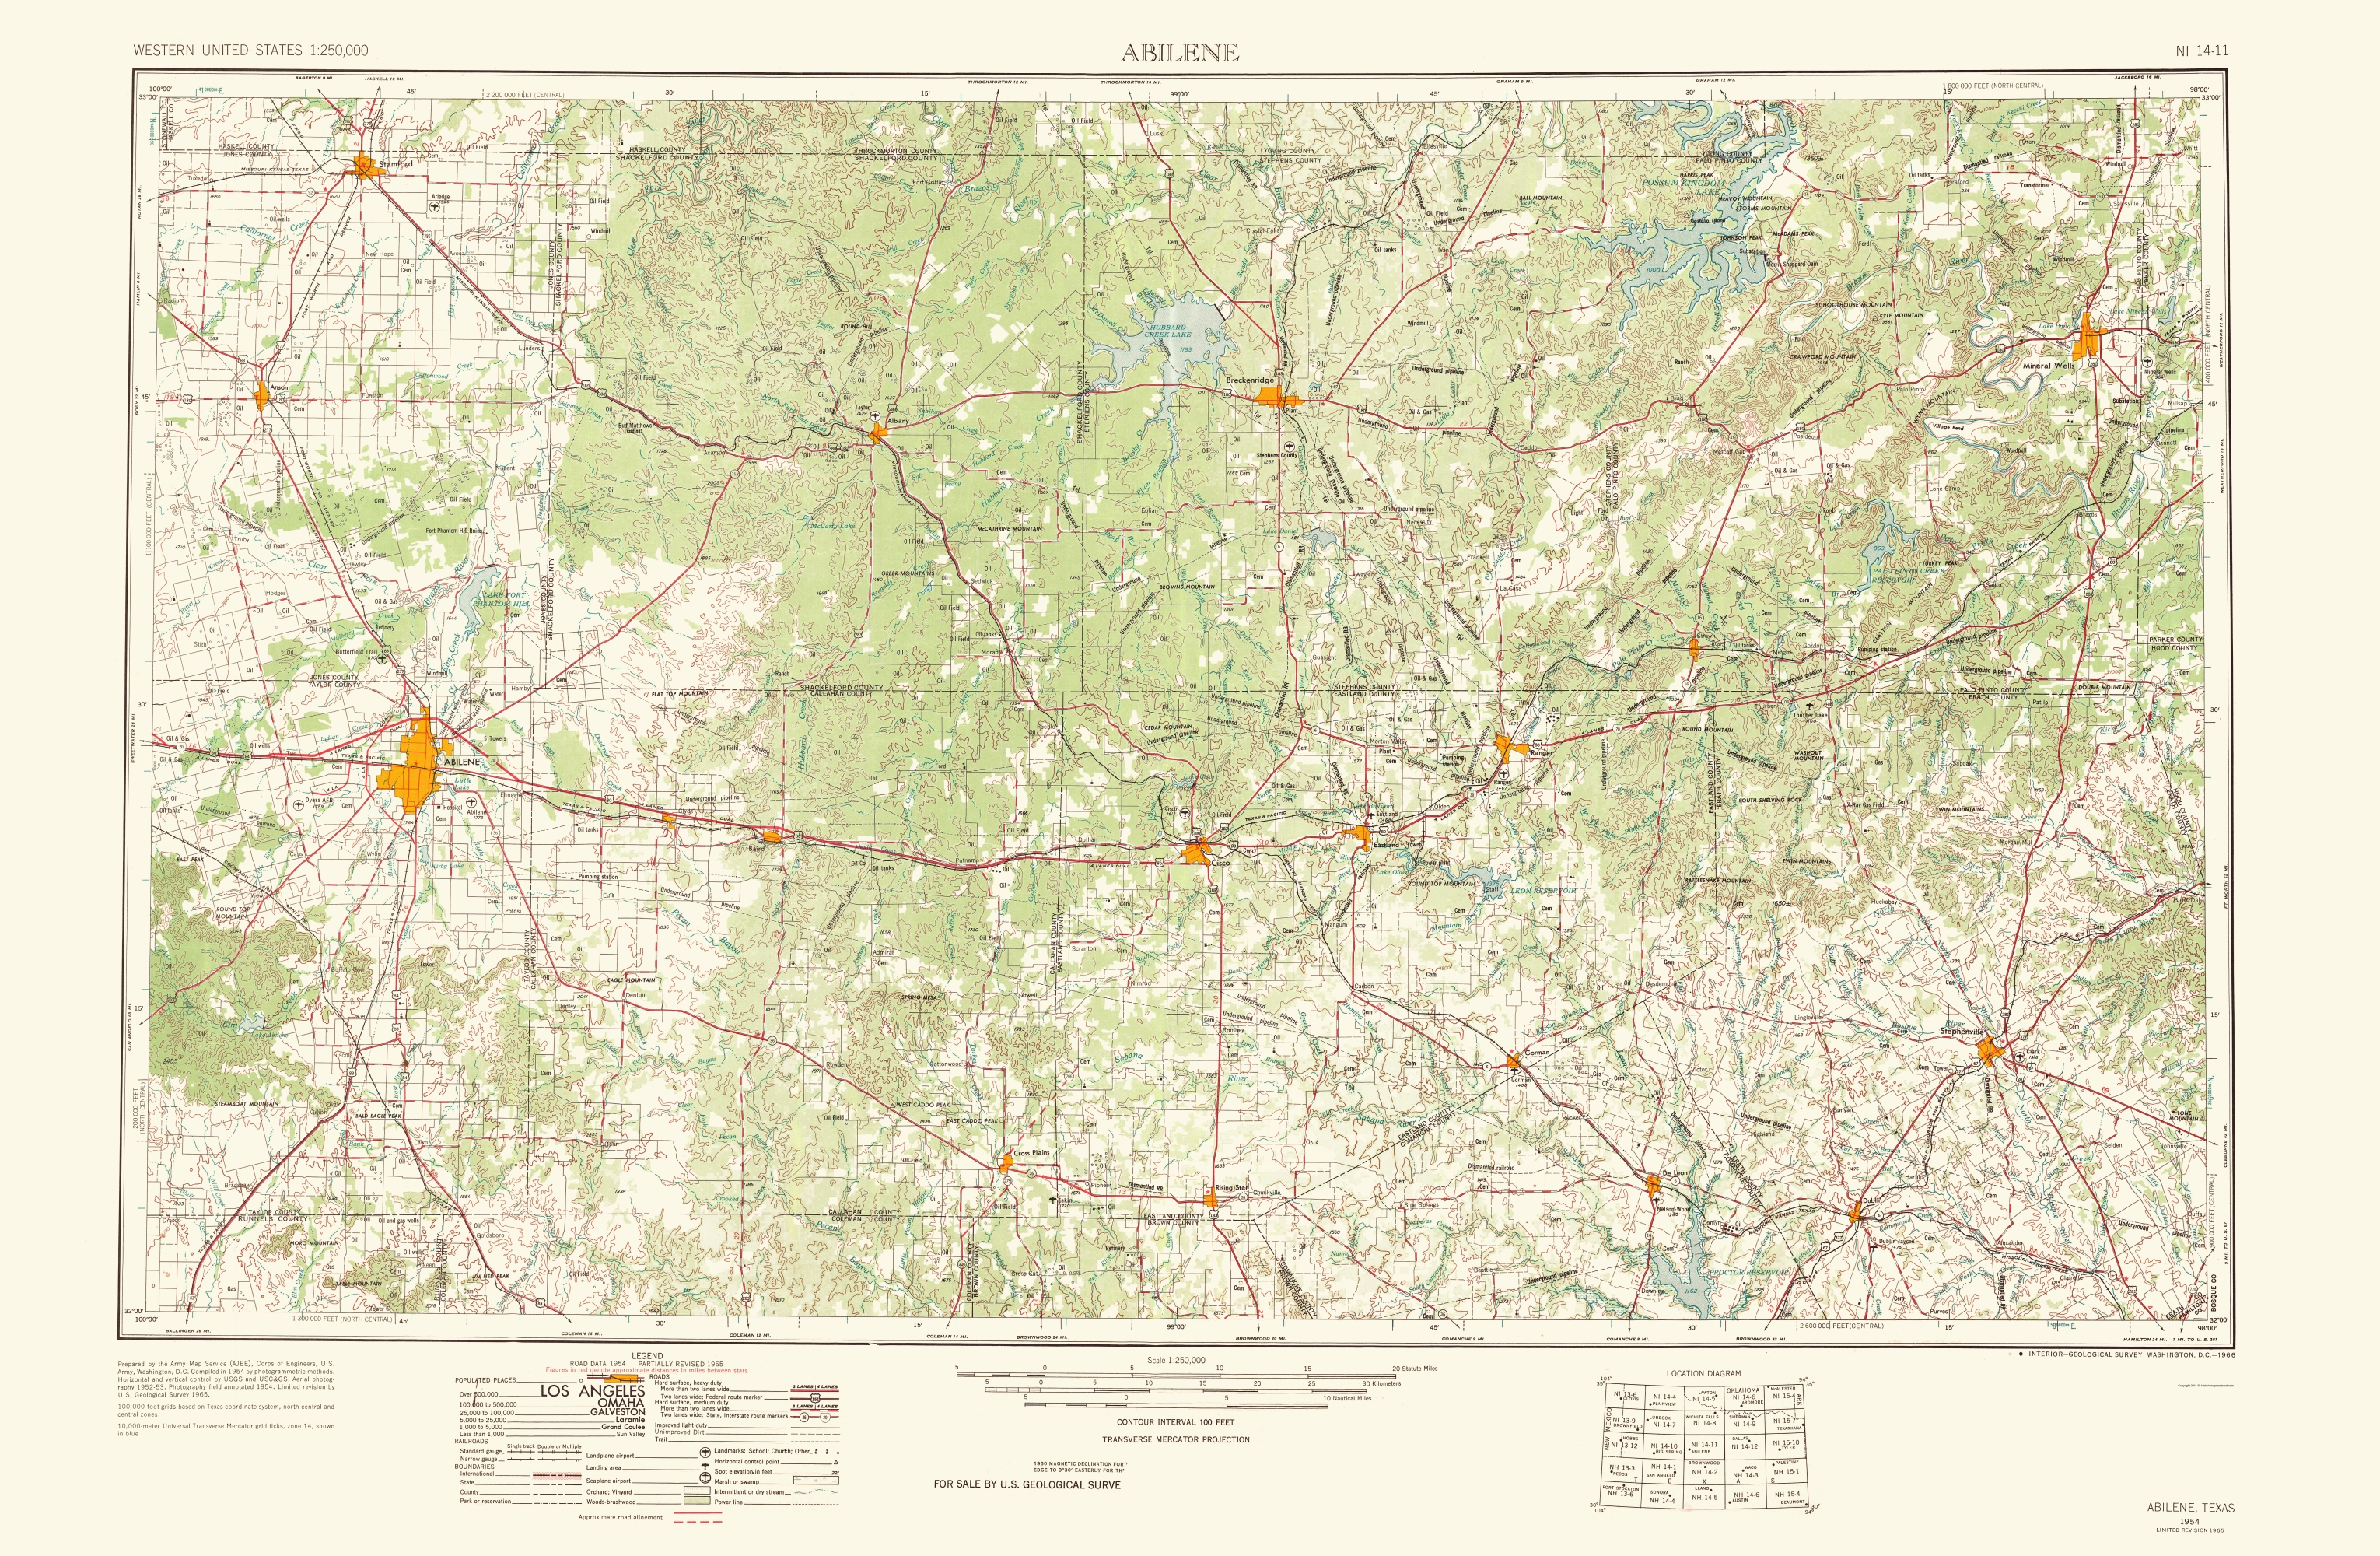 Old Topographical Map - Abilene Texas 1966